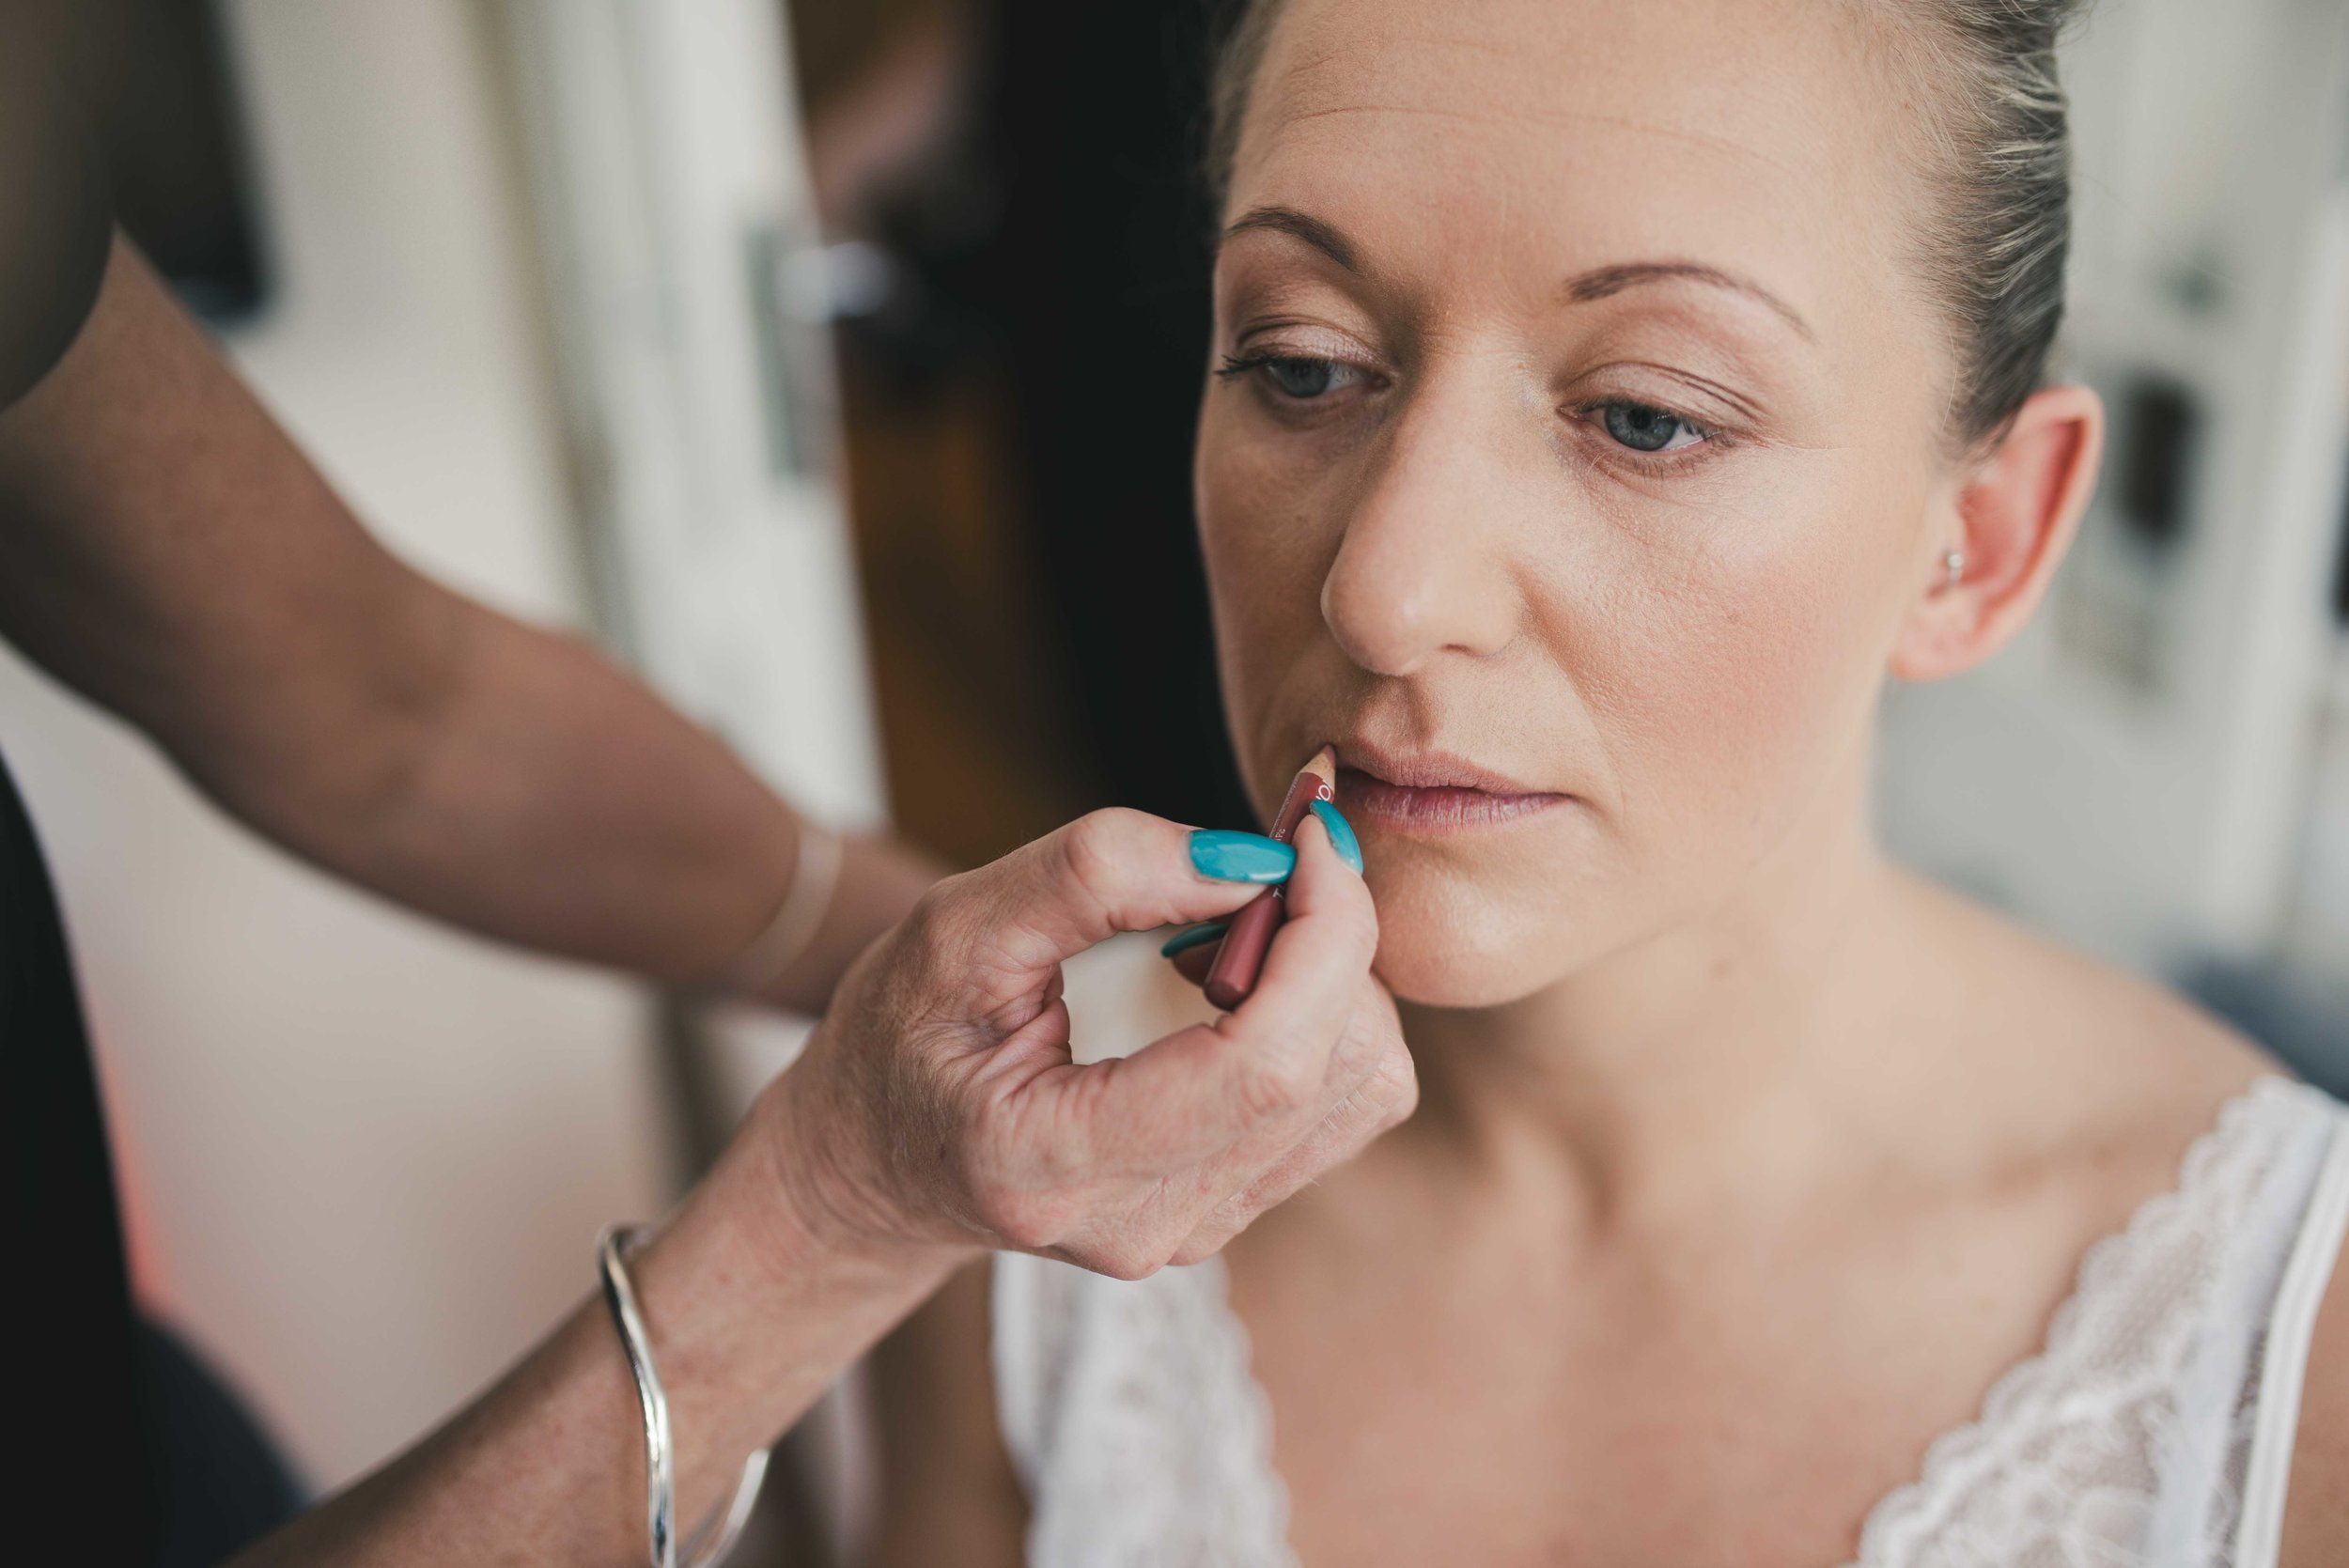 Lea-cooper-photography-wedding-photography-stoke-on-trent-wolverhampton-bridal-prep-bridal-photography-wedding-preperation-make-up-getting-ready-photos-wedding-photographer-32.JPG